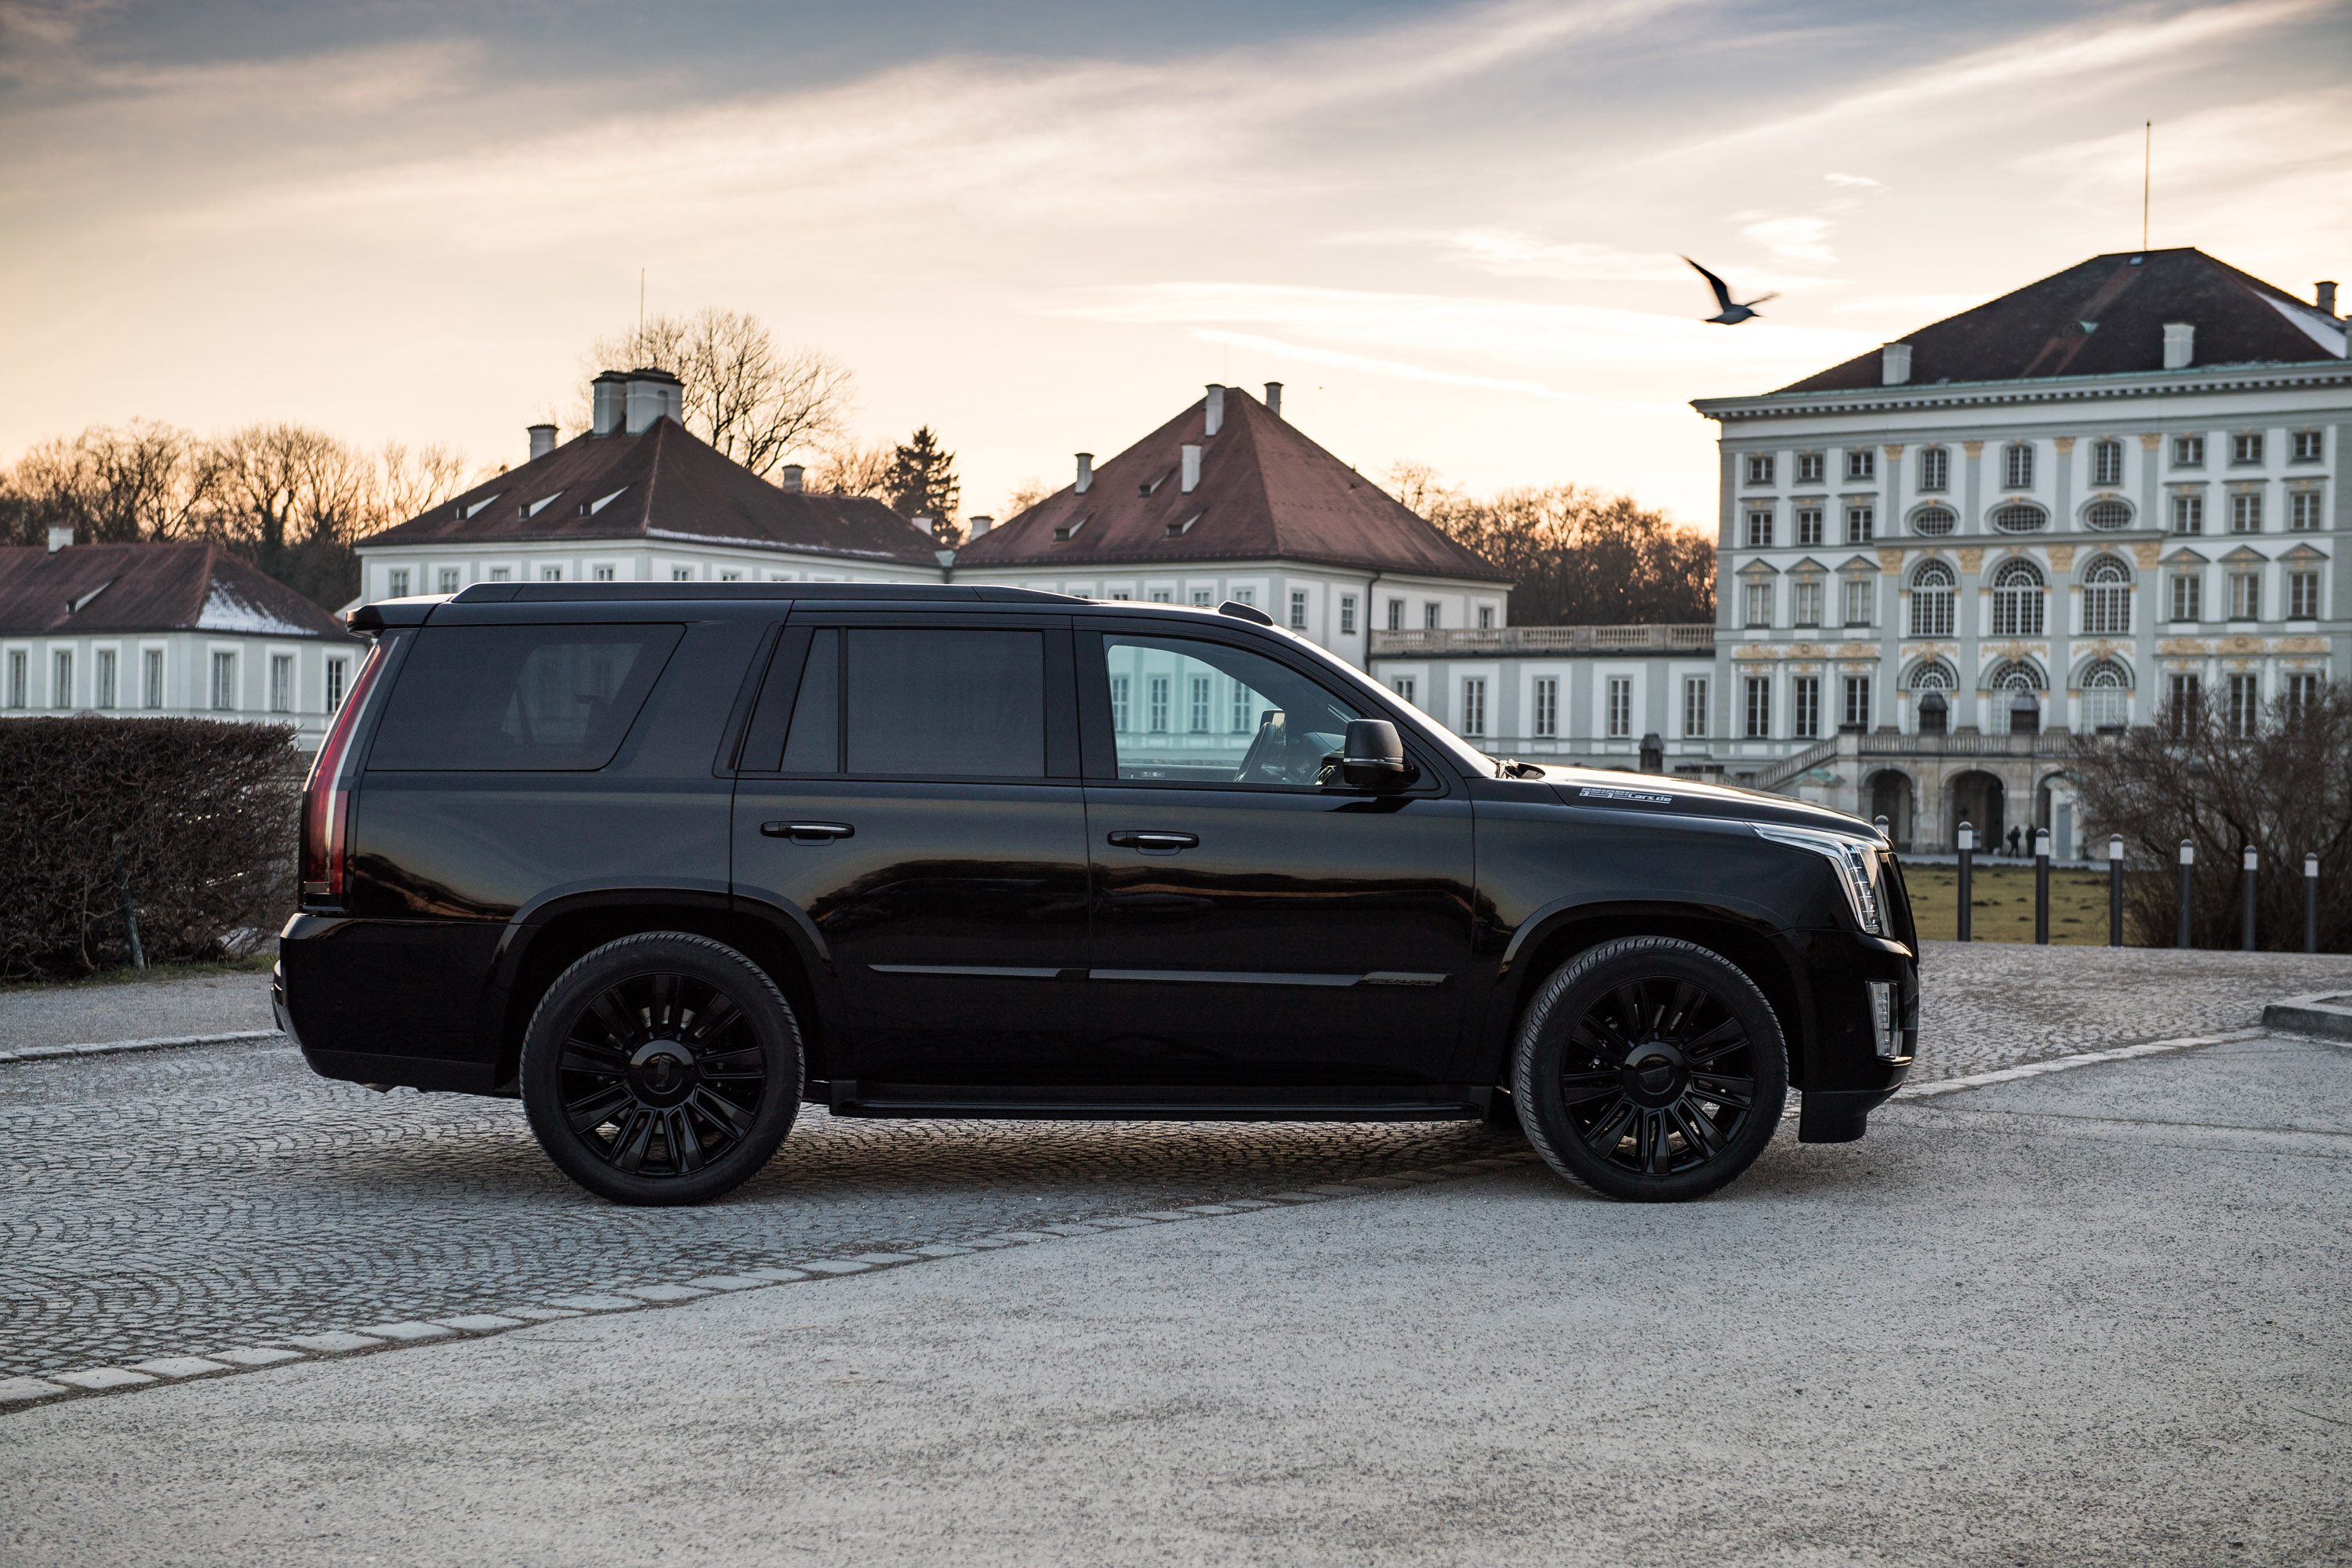 Geigercars De Showcases A Pretty Large Quot Black Edition